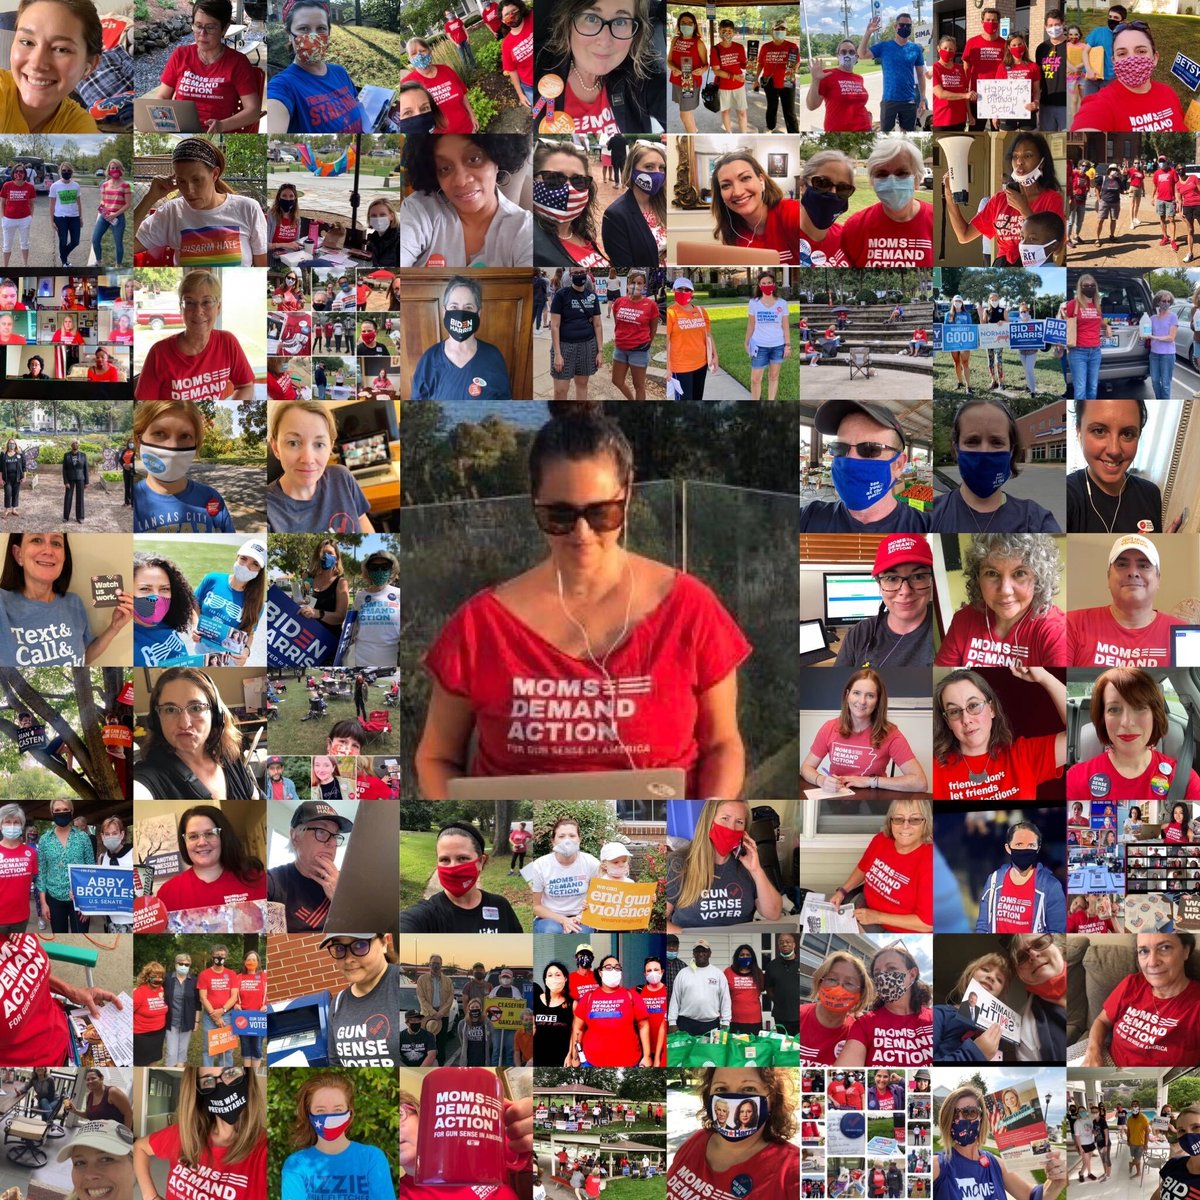 This weekend @MomsDemand vols across the country stood with community partners, talked gun safety & called, texted, lit-dropped & CALLED (@tweet_elva - center - alone made 14hrs of bilingual calls 4 #GunSenseCandidates in TX) #MomsAreEverywhere #Election2020 https://t.co/e2DgSROfOE